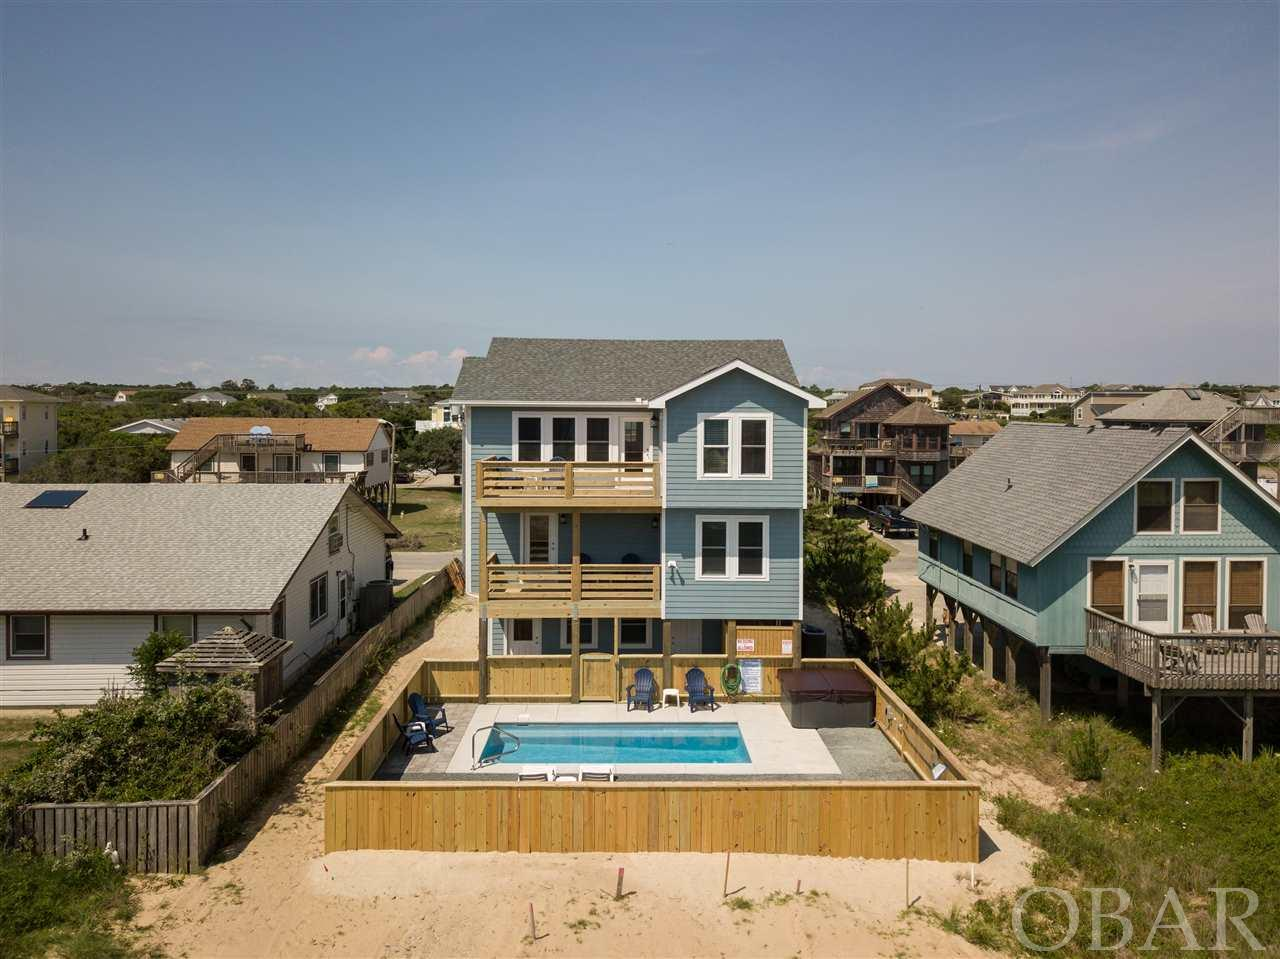 5009 Lindbergh Avenue,Kitty Hawk,NC 27949,4 Bedrooms Bedrooms,3 BathroomsBathrooms,Residential,Lindbergh Avenue,99249